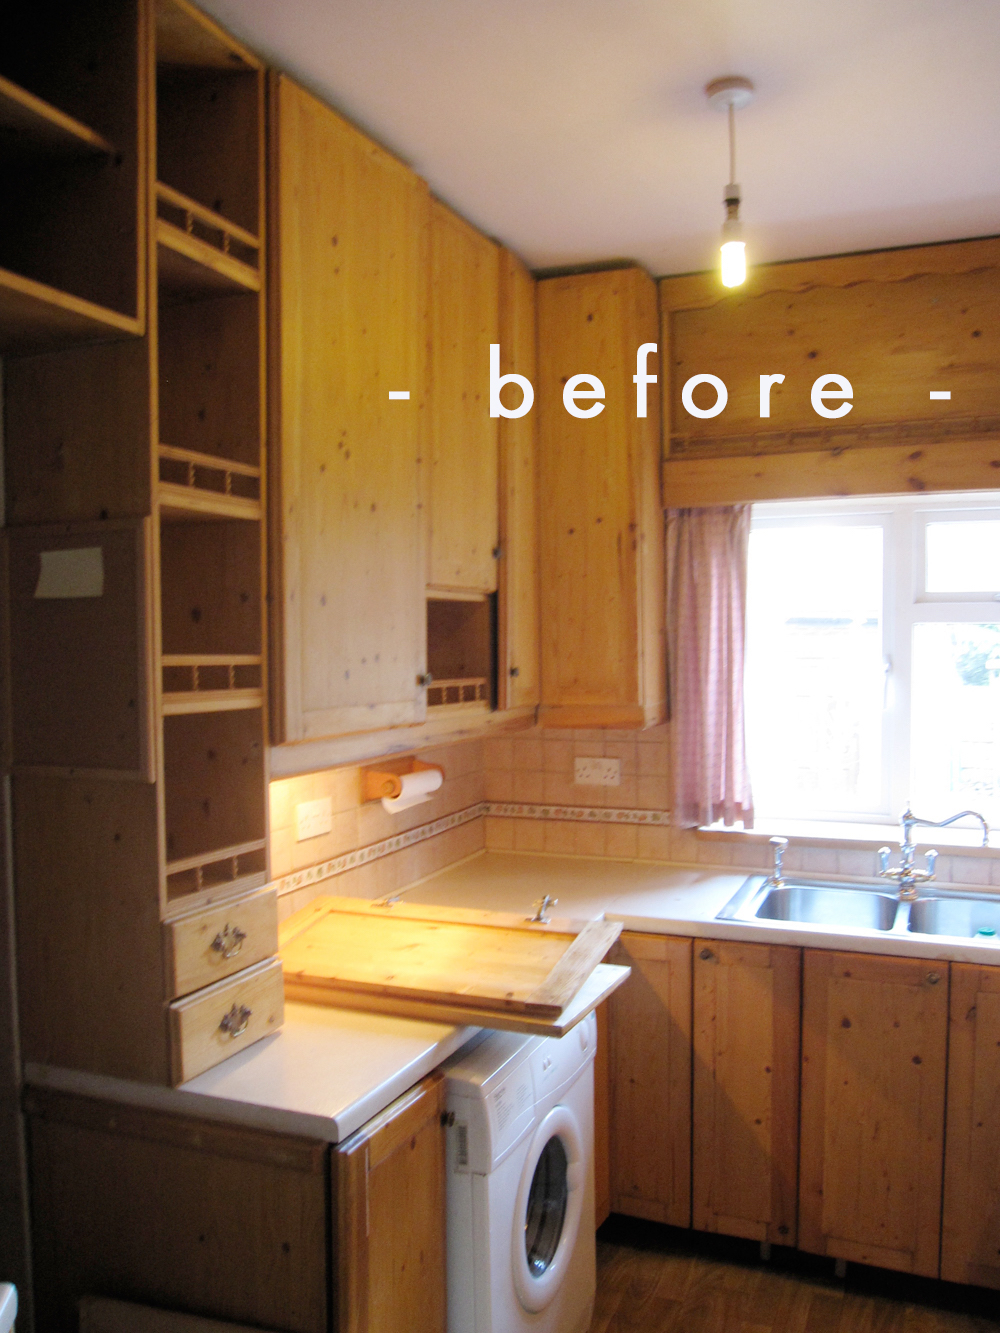 Story-of-a-kitchen-renovation-before